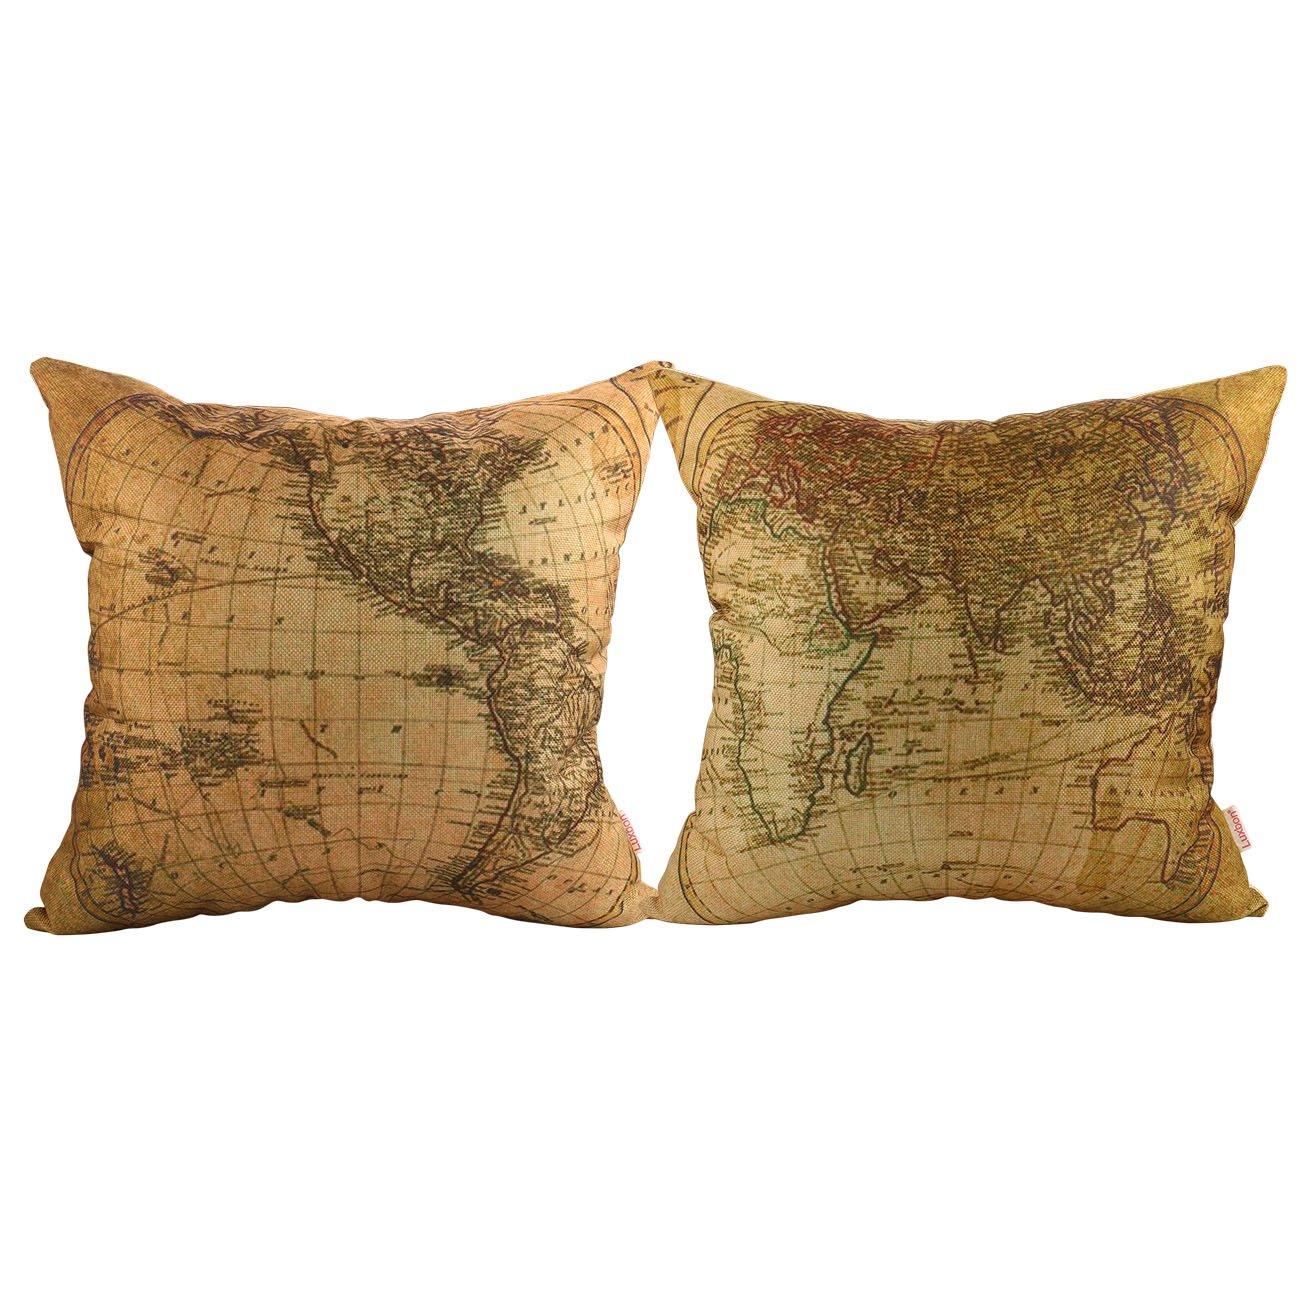 "Luxbon Set of 2Pcs Geography Theme World Map Decor Throw Pillow Cases Nautical Decor Pillow Covers Cotton Linen Sofa Couch Chair Decorative Cushion Covers 18""x18"" /45x45cm"